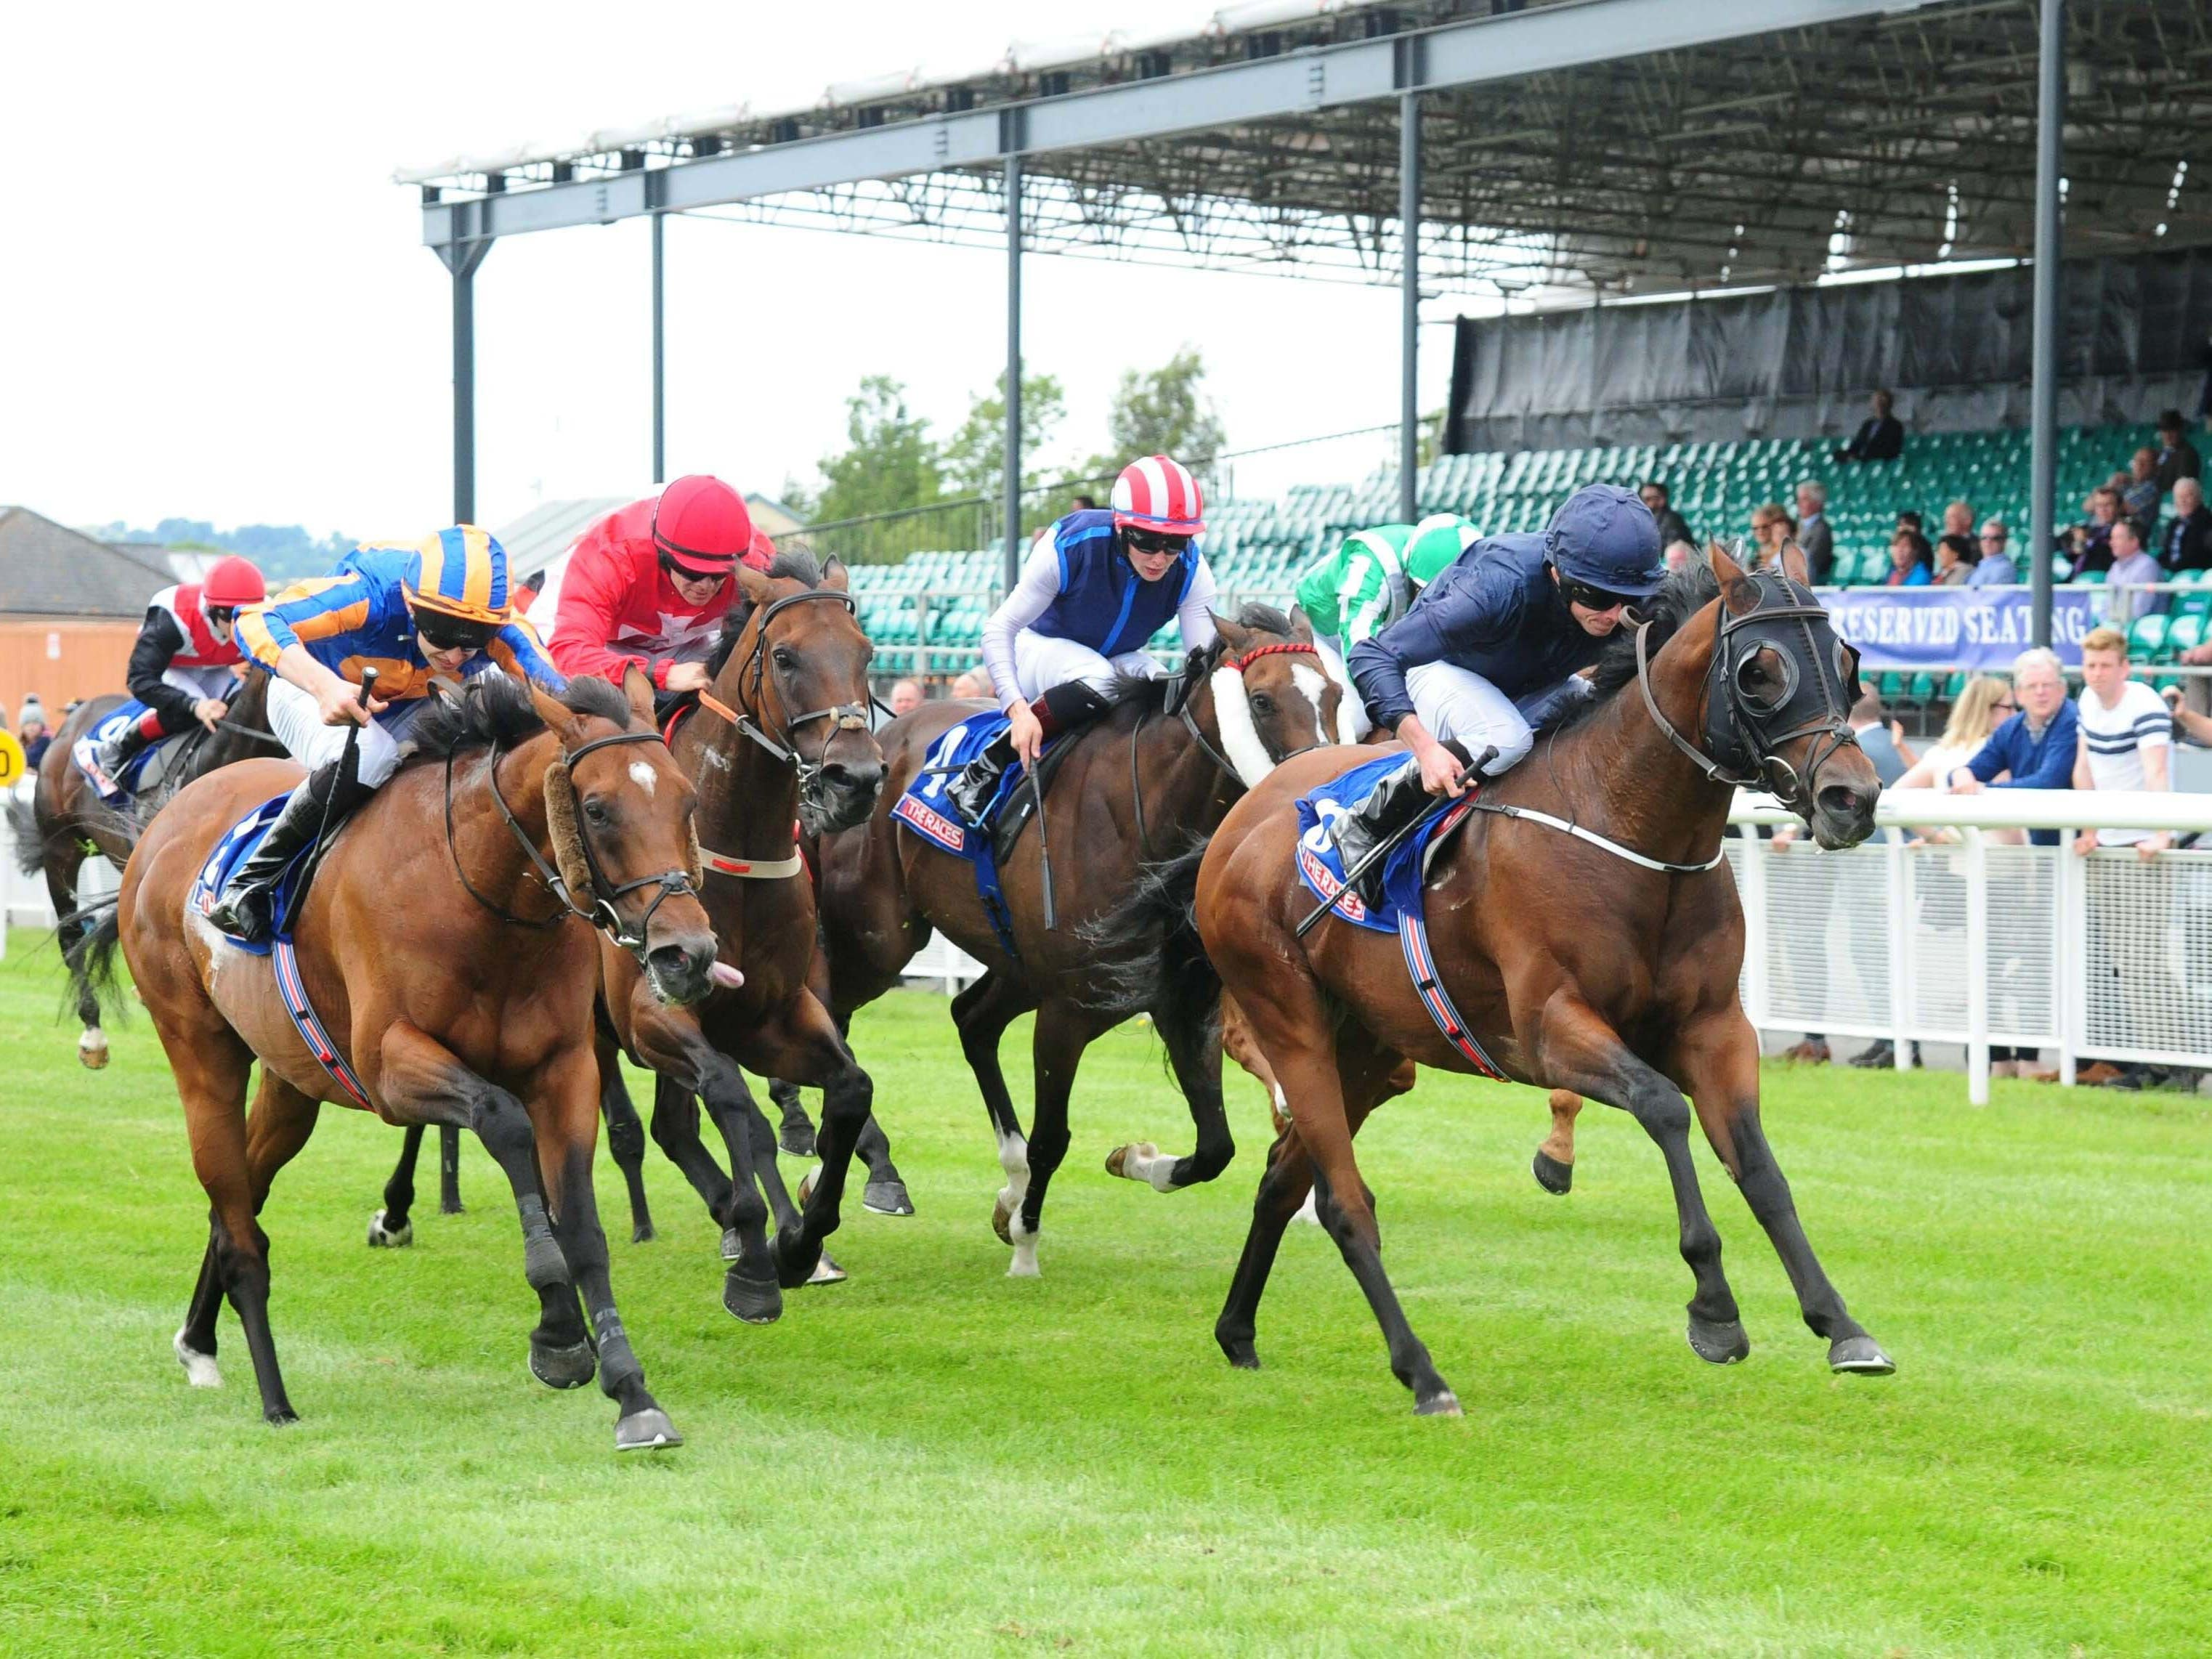 Action at the Curragh